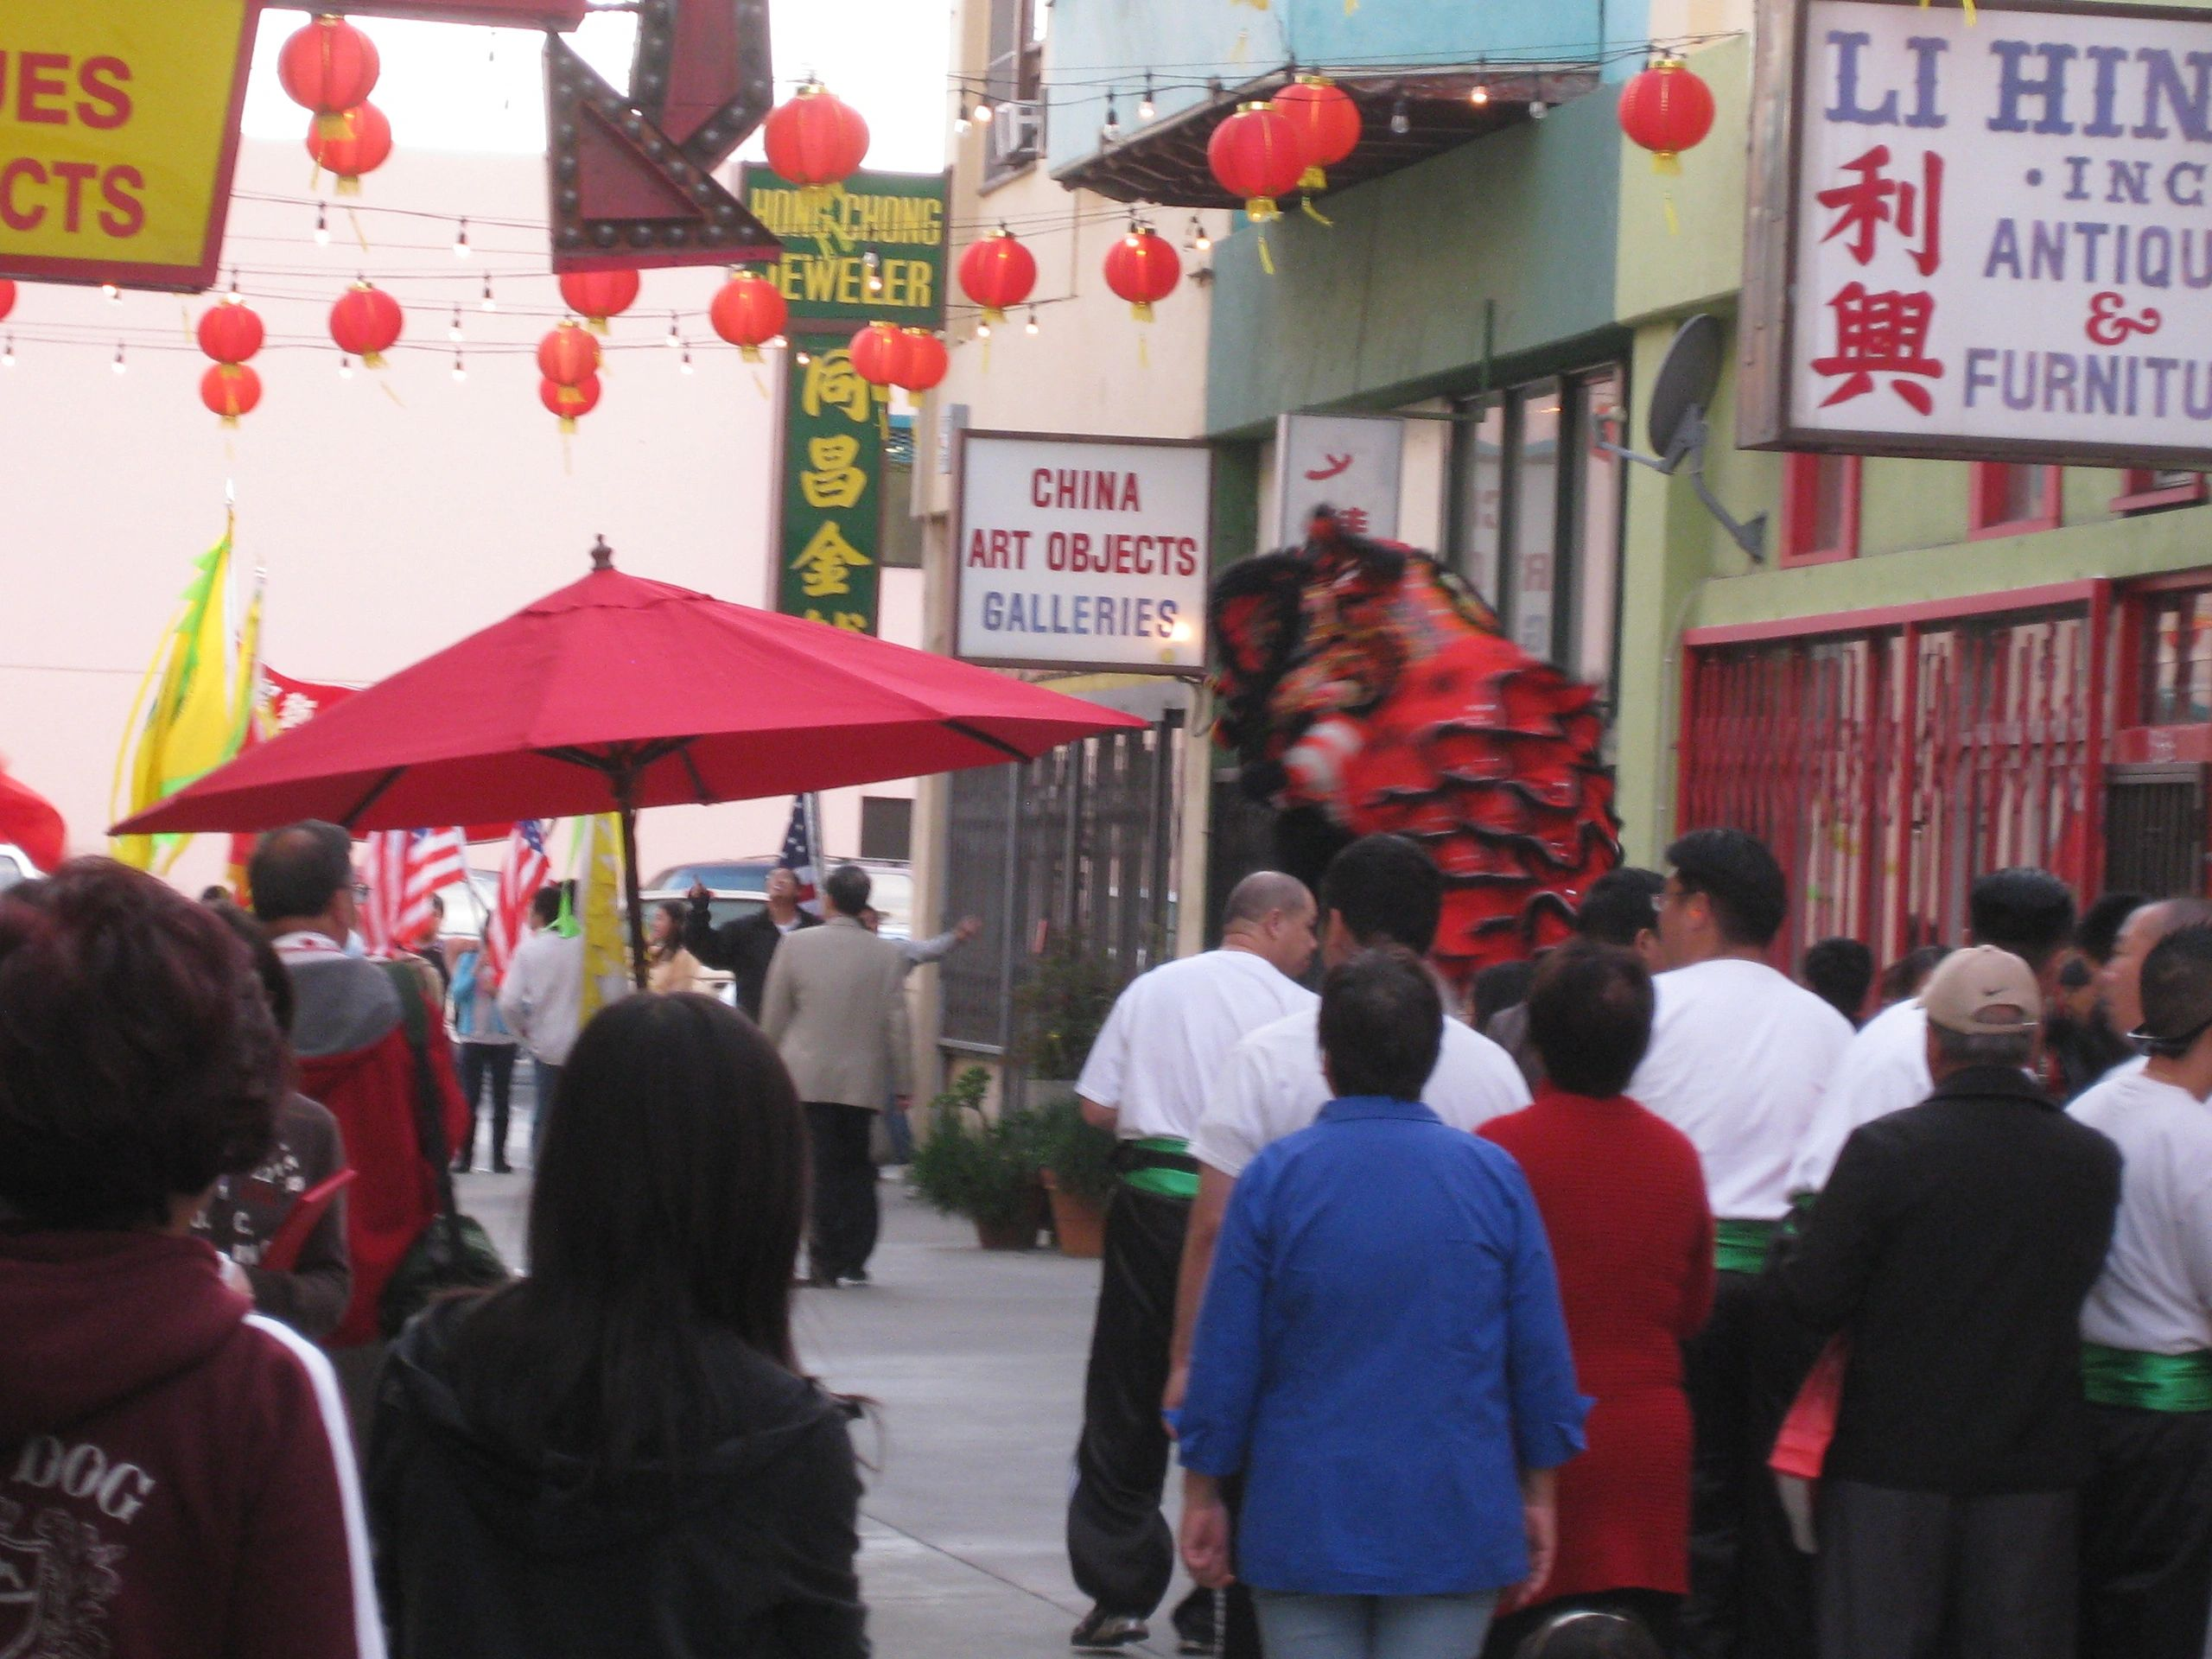 Chung King Road, a walking street, Chinatown Los Angeles was the location of  my studio for 10 yrs.